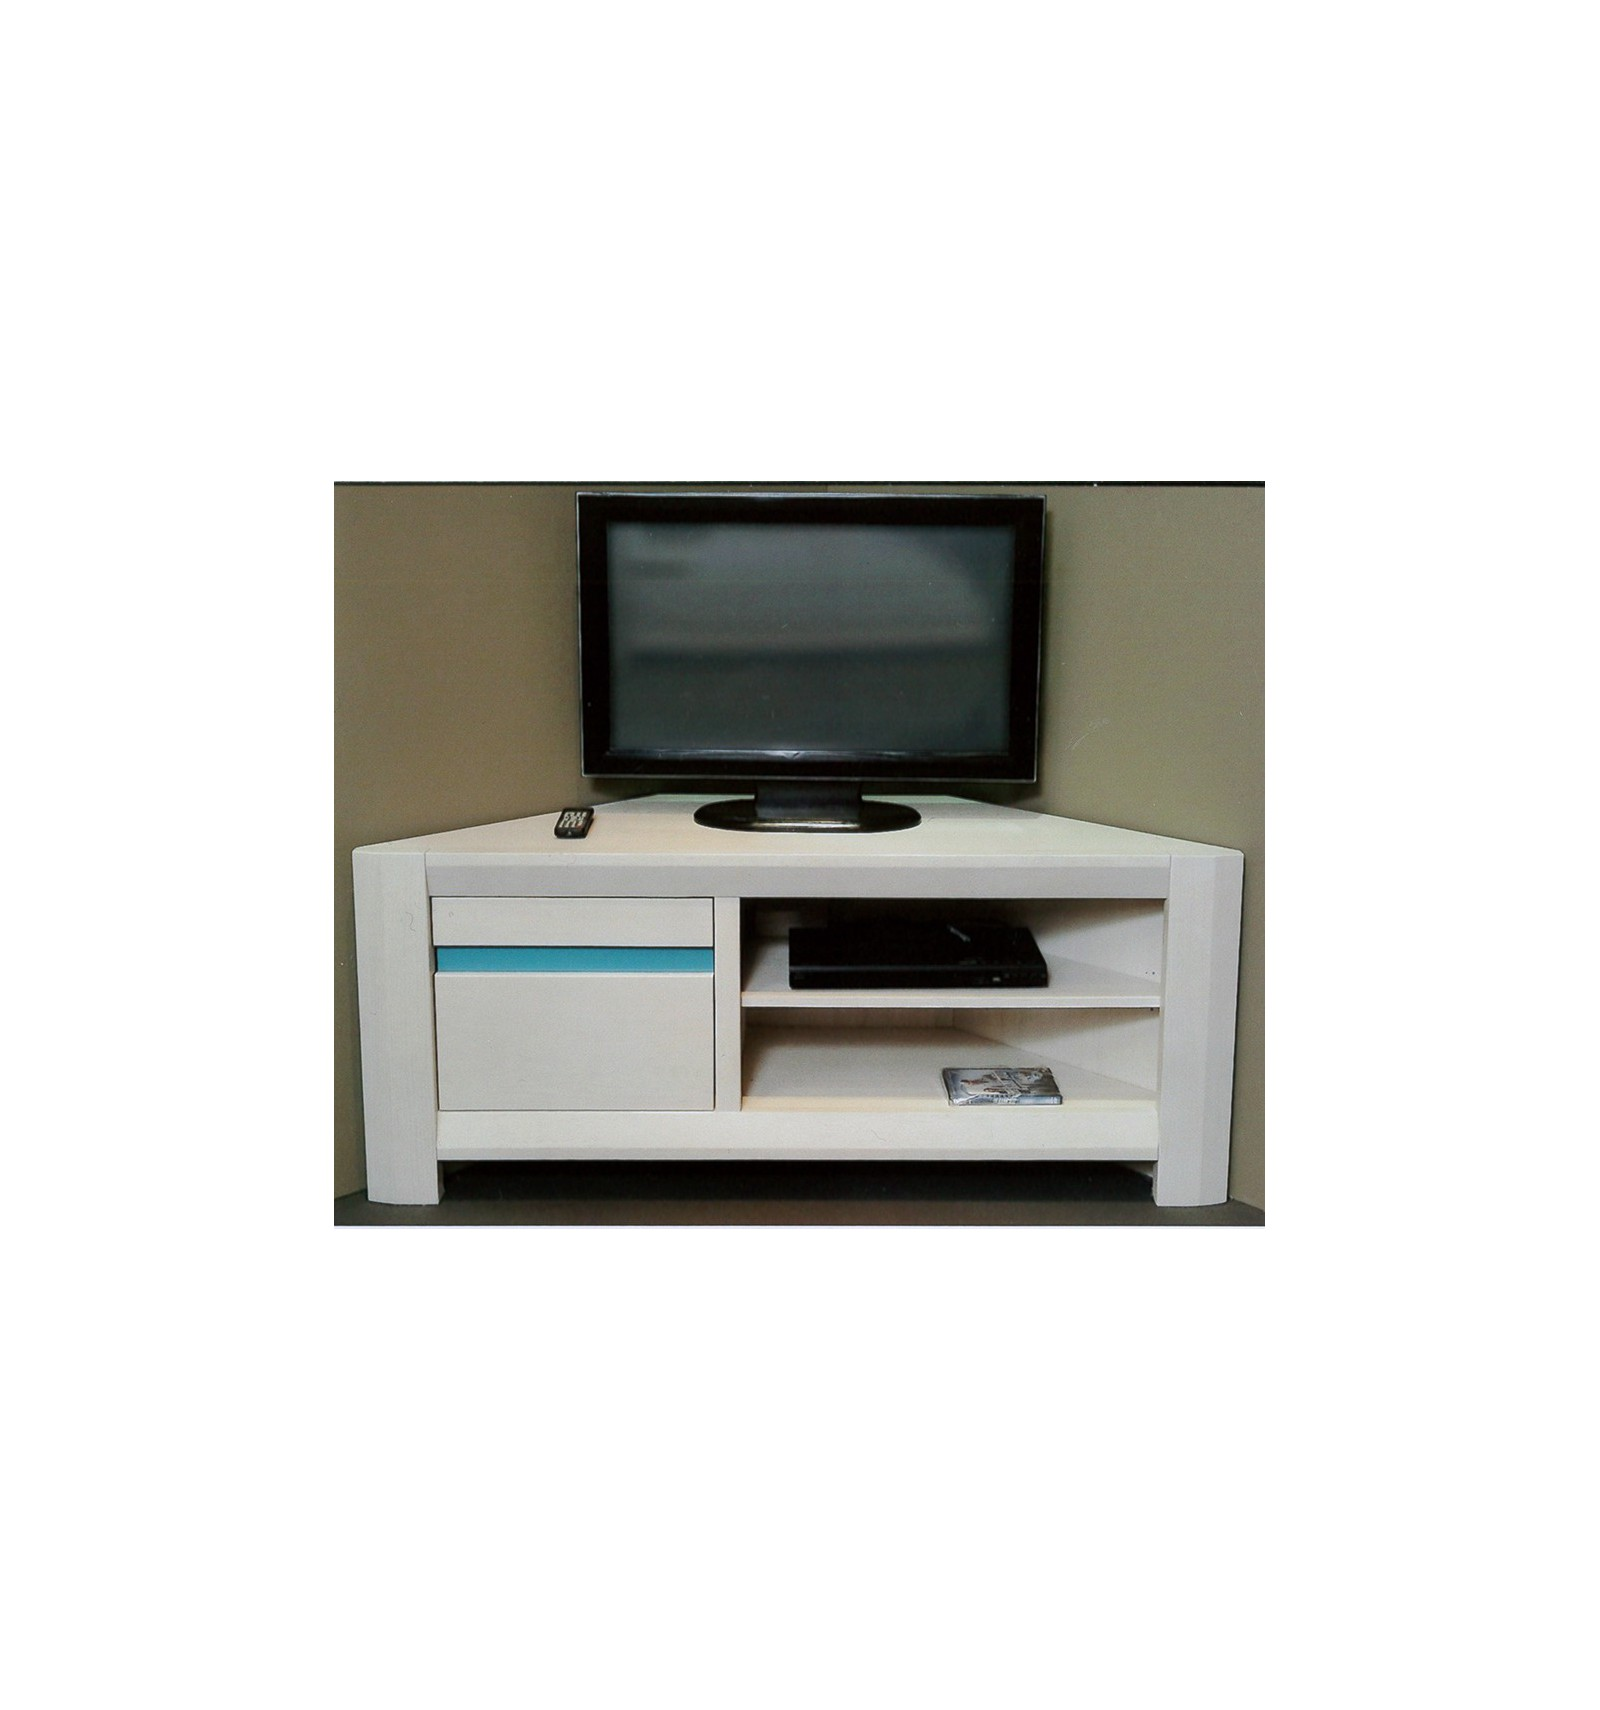 Meuble Tv D Angle Blanc Laqu Urbantrott Com # Meuble Tv Blanc Laque But